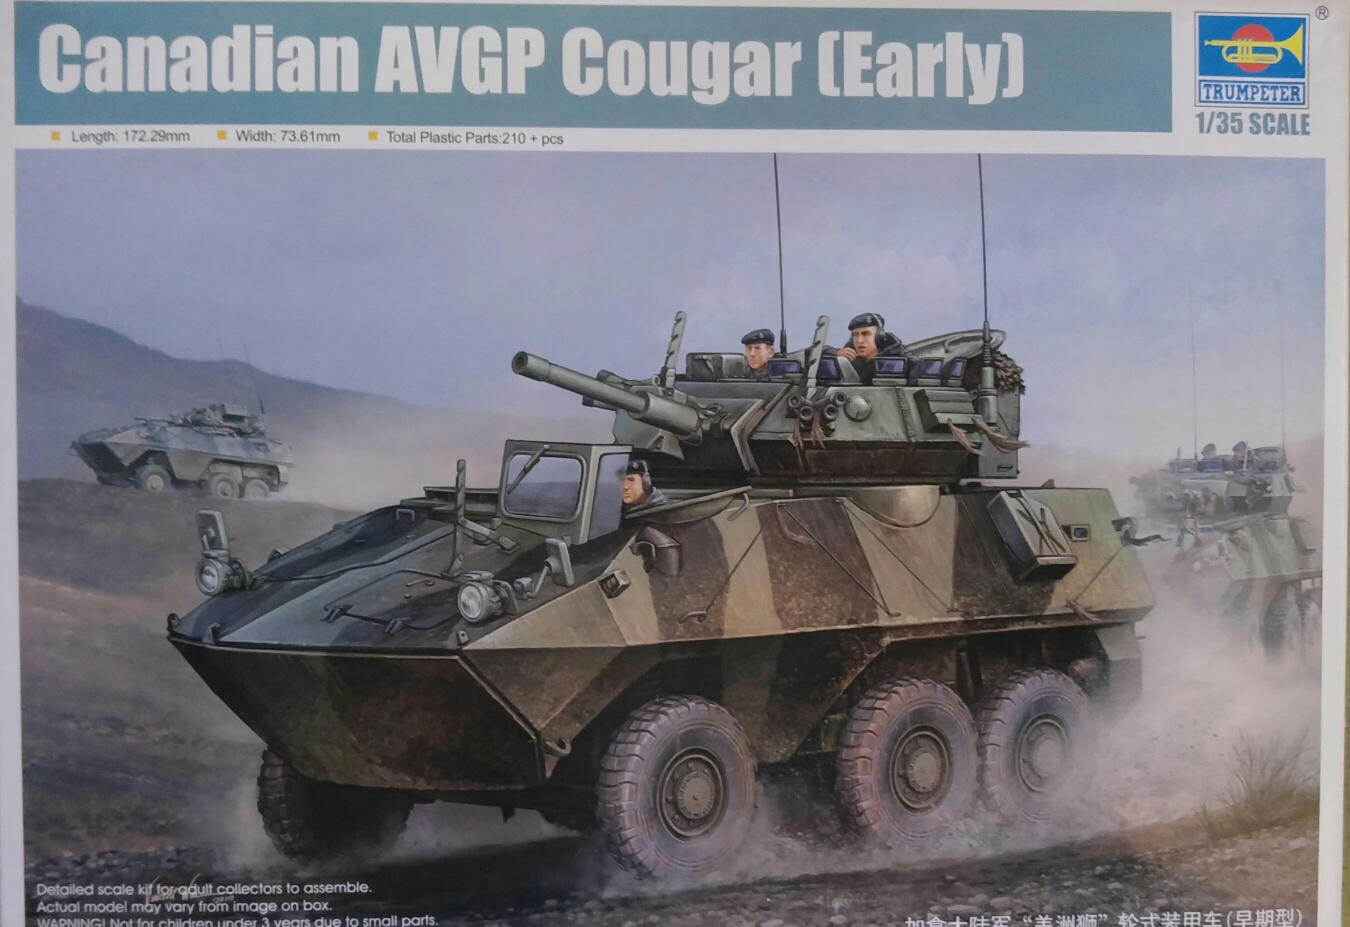 Trumpeter 01501 Canadian AVGP Cougar early